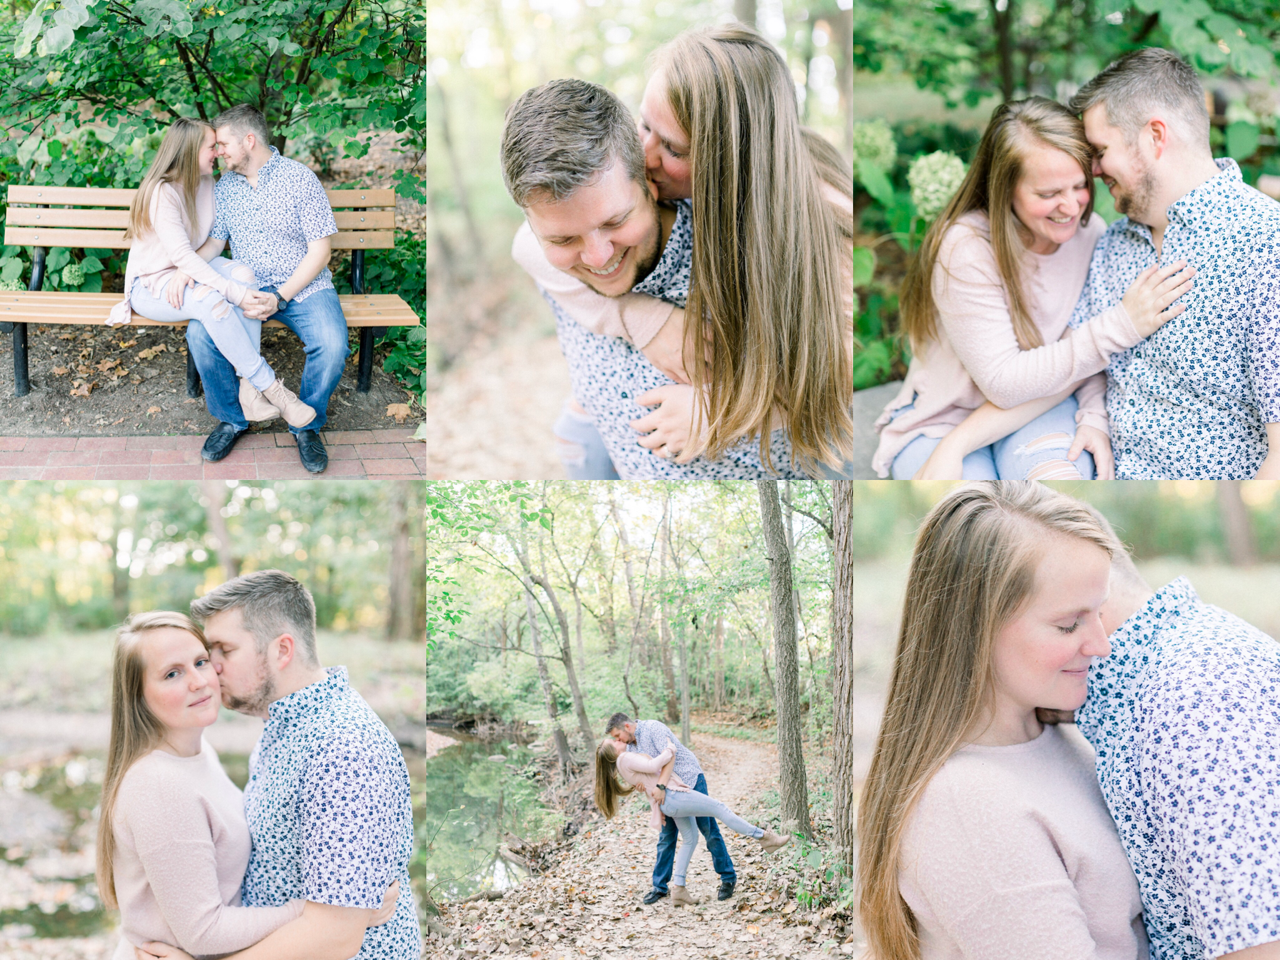 Katelin & Robert | A Soft and Romantic Early Fall Engagement in Carmel, Indiana | Indianapolis Destination Wedding Photographers